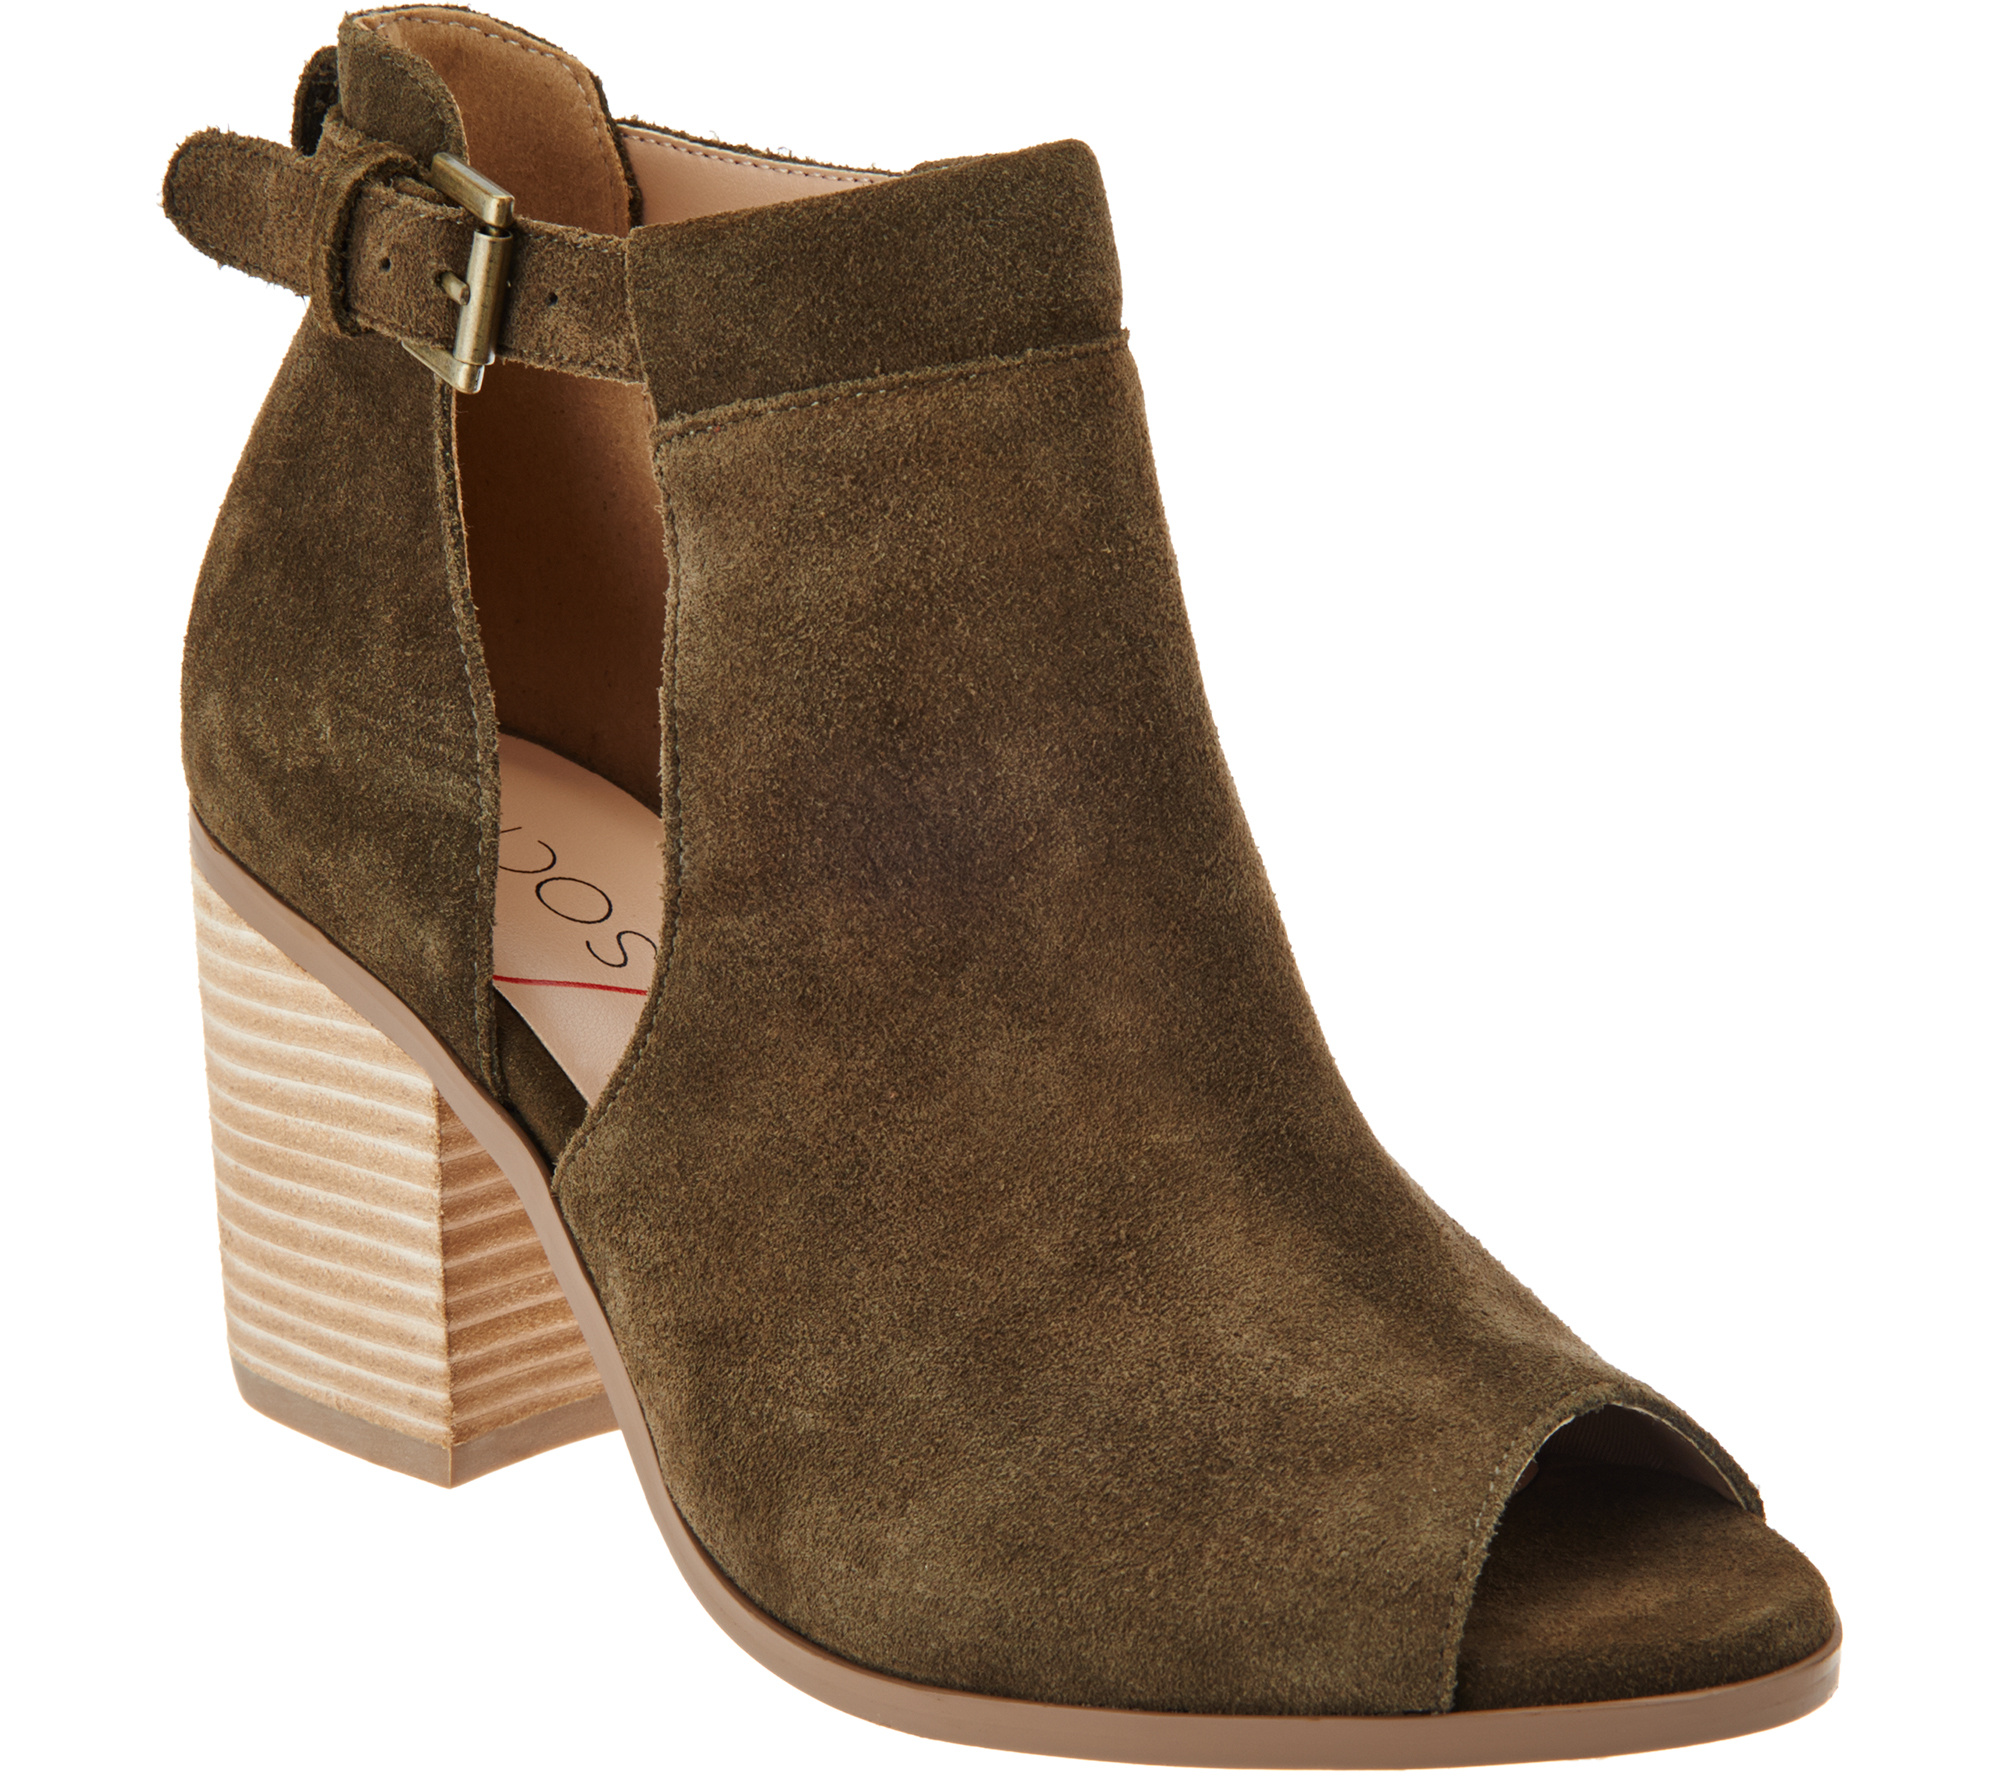 Sole Society Suede Peep-Toe Ankle Boots - Ferris